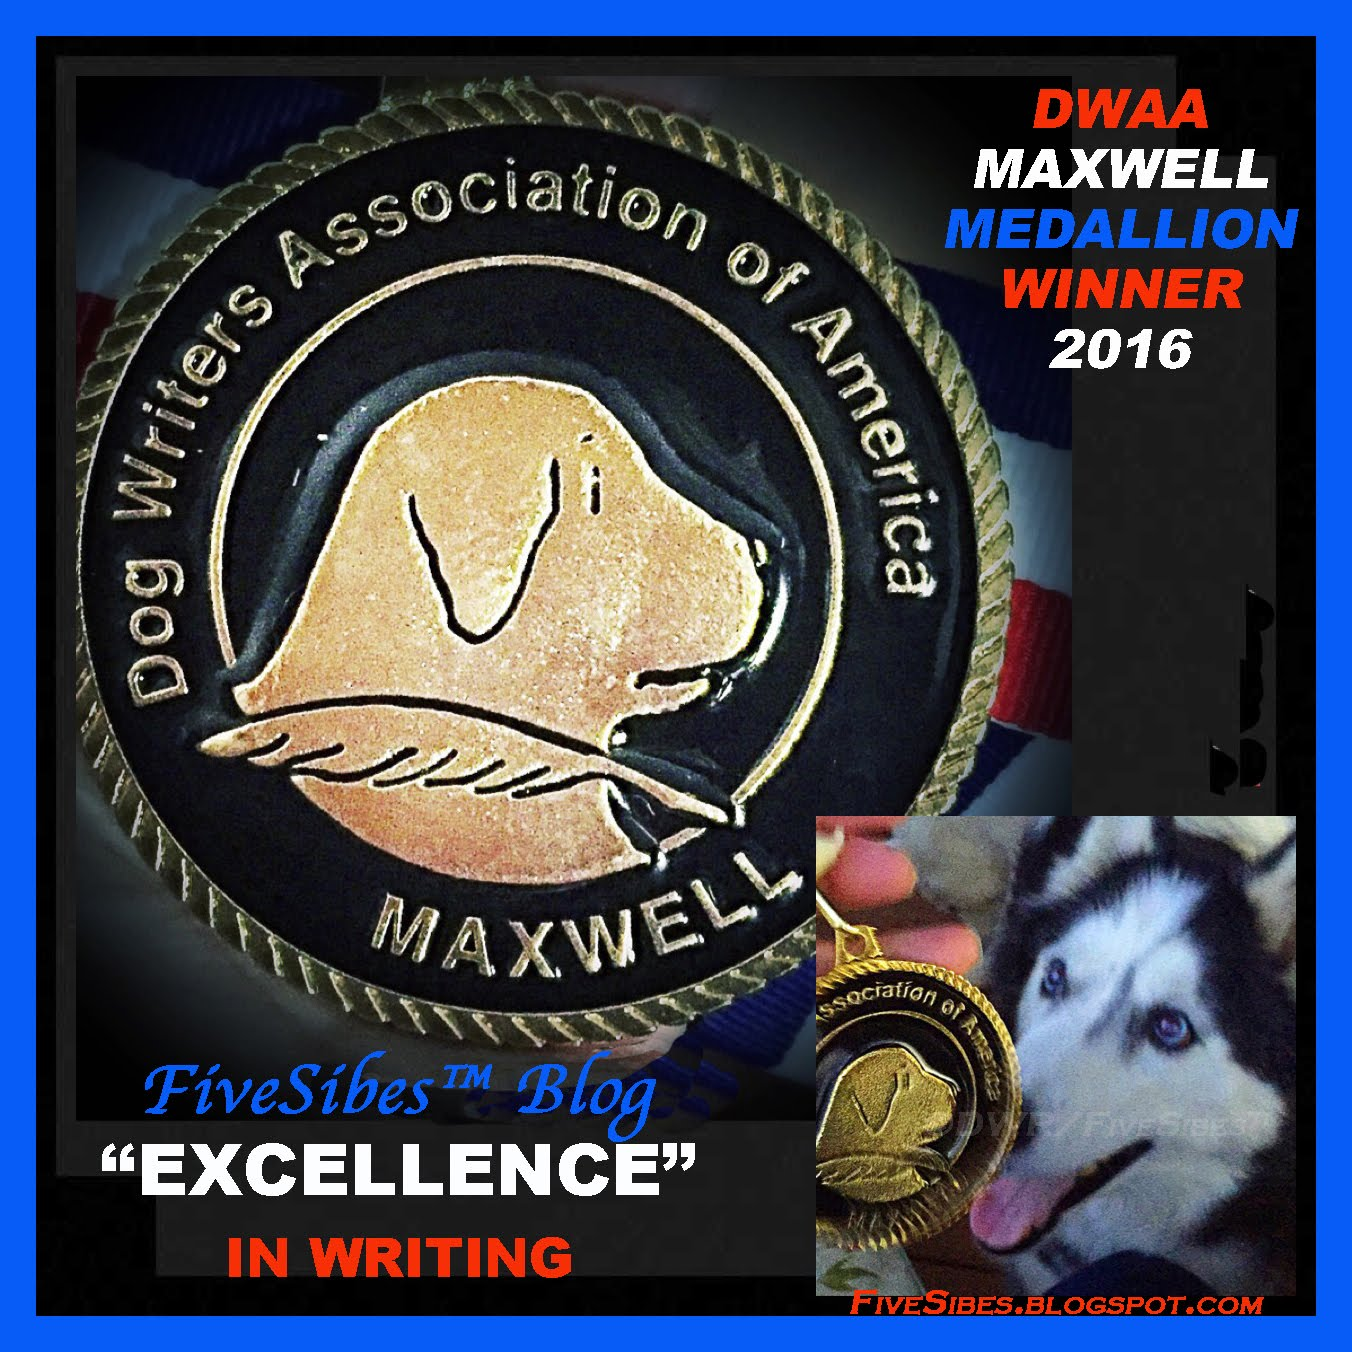 DWAA Maxwell Medallion Recipient